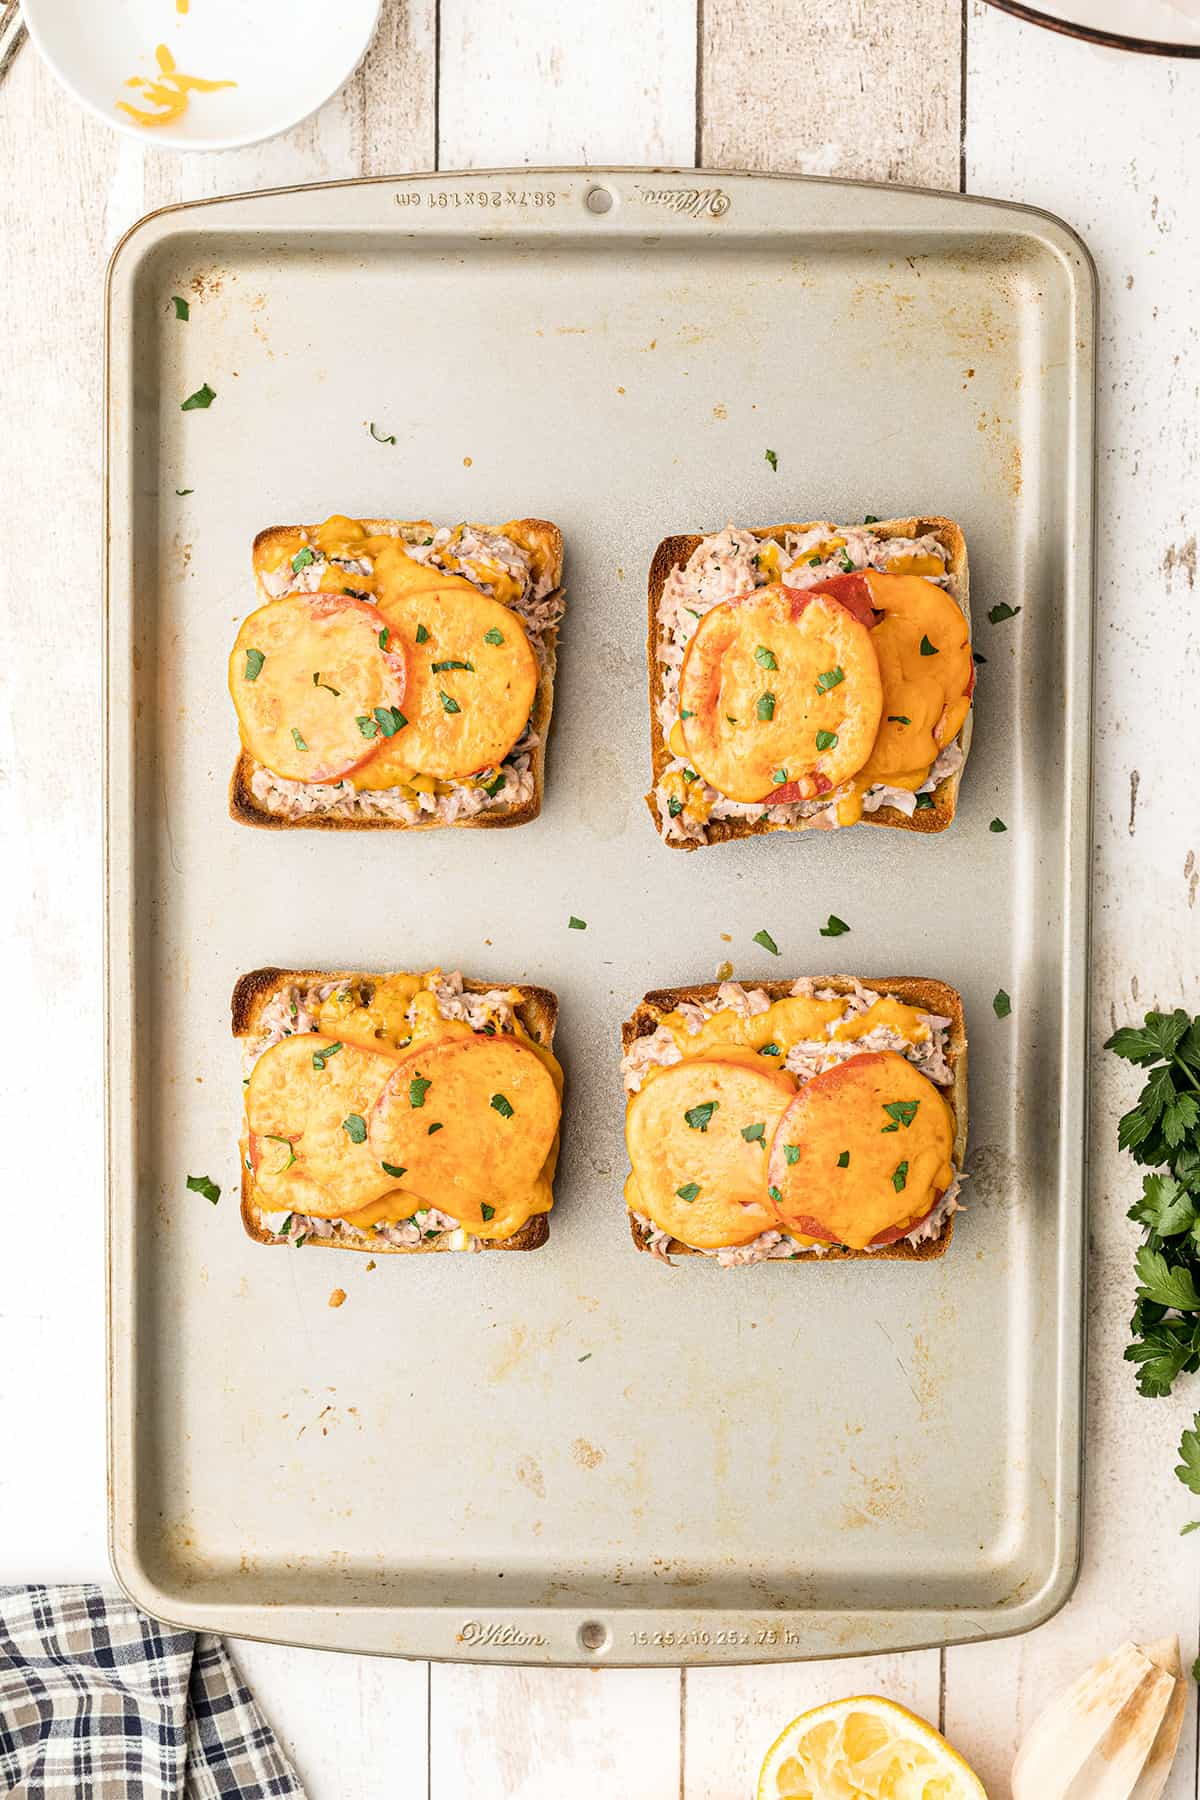 Finished sandwiches on a baking sheet.